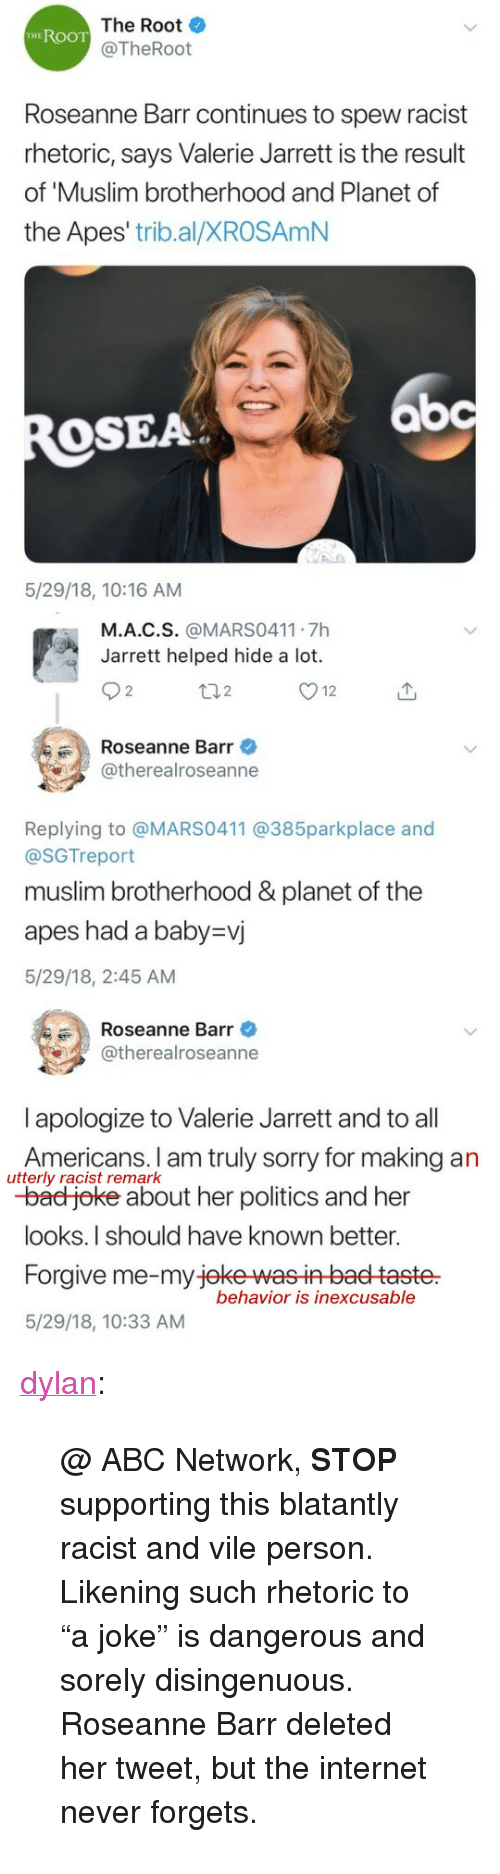 "Abc, Bad, and Internet: The Root  @TheRoot  HEROOT  Roseanne Barr continues to spew racist  rhetoric, says Valerie Jarrett is the result  of 'Muslim brotherhood and Planet of  the Apes' trib.al/XROSAmN  bc  OSEA  5/29/18, 10:16 AM   M.A.C.S. @MARS0411 7h  Jarrett helped hide a lot.  2  2  Roseanne Barr  @therealroseanne  Replying to @MARS0411 @385parkplace and  @SGTreport  muslim brotherhood &planet of the  apes had a baby-vj  5/29/18, 2:45 AM   Roseanne Barr  @therealroseanne  l apologize to Valerie Jarrett and to all  Americans. I am truly sorry for making an  -bad joke about her politics and her  looks.I should have known better.  Forgive me-my jeke wasin baet taste  5/29/18, 10:33 AM  utterly racist remark  behavior is inexcusable <p><a href=""https://dylan.tumblr.com/post/174371828198/abc-network-stop-supporting-this-blatantly"" class=""tumblr_blog"">dylan</a>:</p><blockquote> <p>@ ABC Network, <b>STOP</b> supporting this blatantly racist and vile person.</p> <p>Likening such rhetoric to ""a joke"" is dangerous and sorely disingenuous.</p> <p>Roseanne Barr deleted her tweet, but the internet never forgets.</p> </blockquote>"